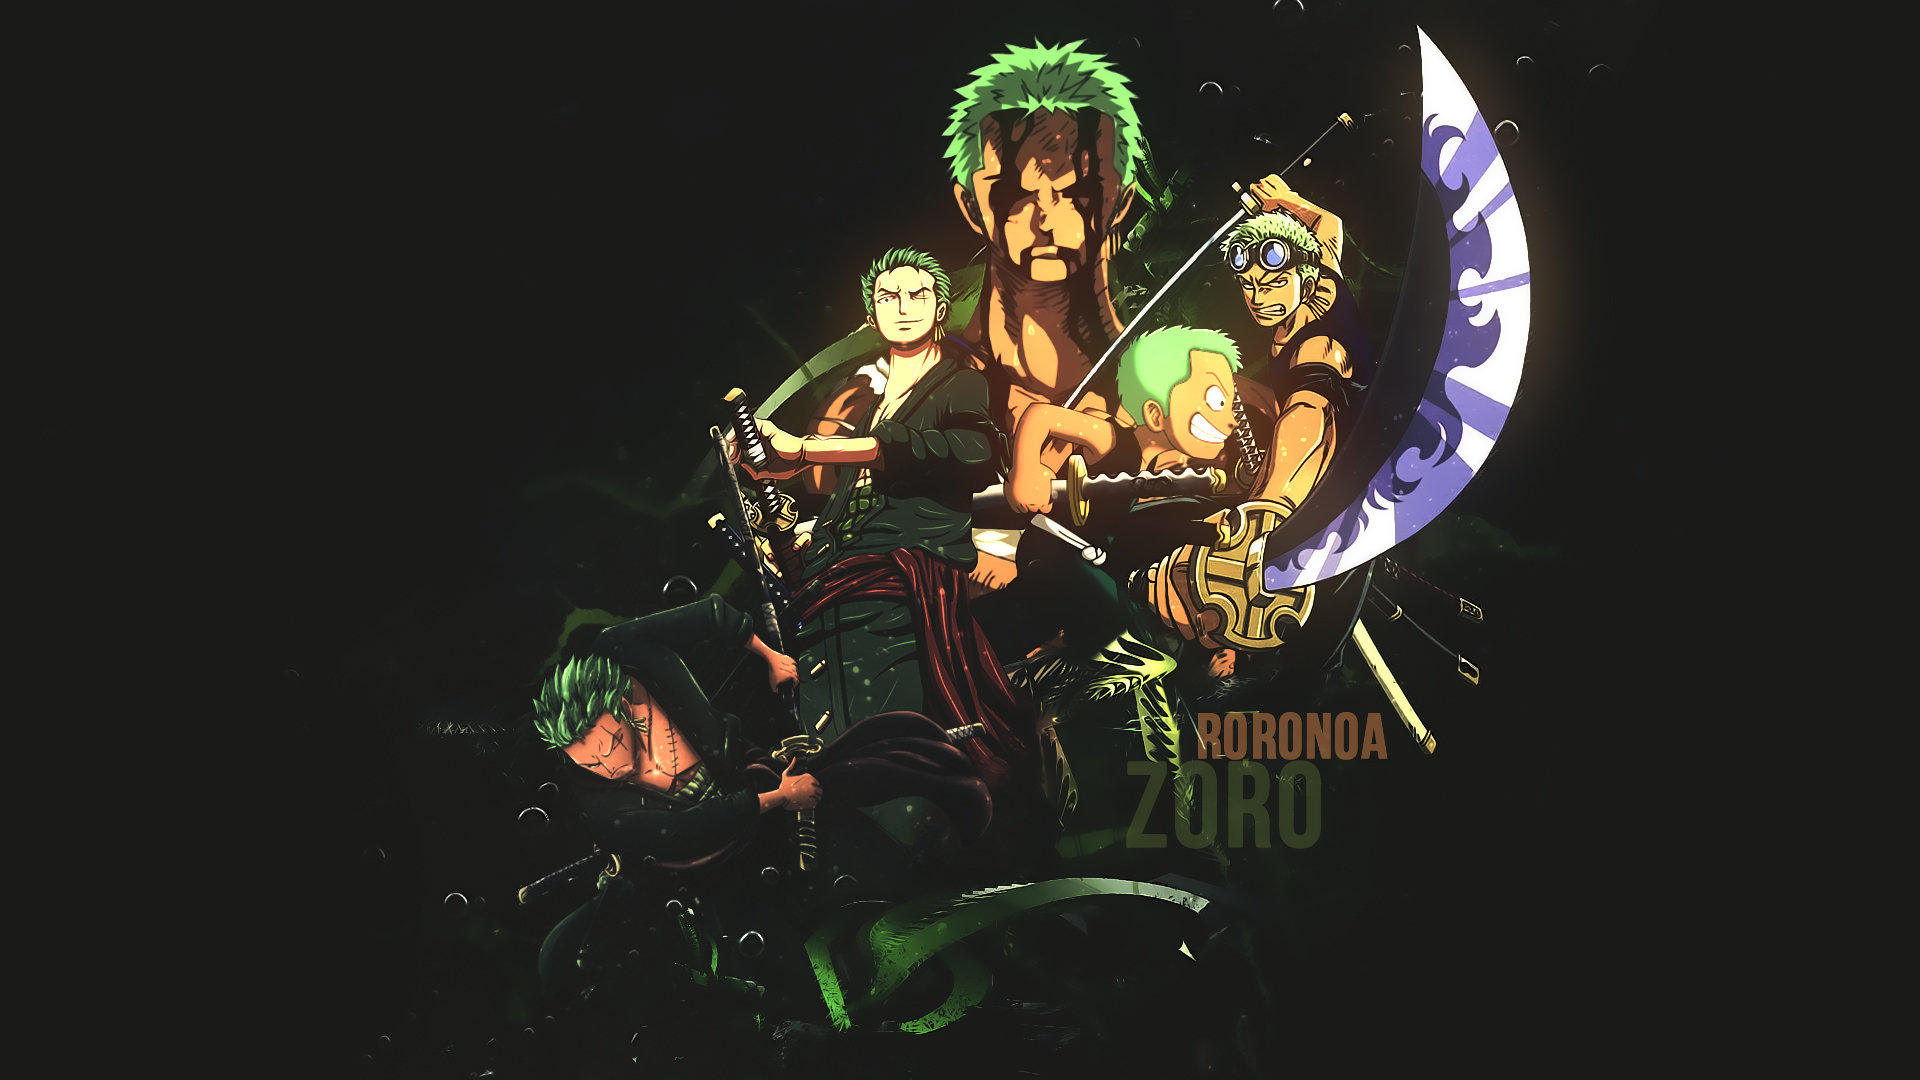 Best Zoro Roronoa Wallpaper Id 314443 For High Resolution Hd 1080p Pc